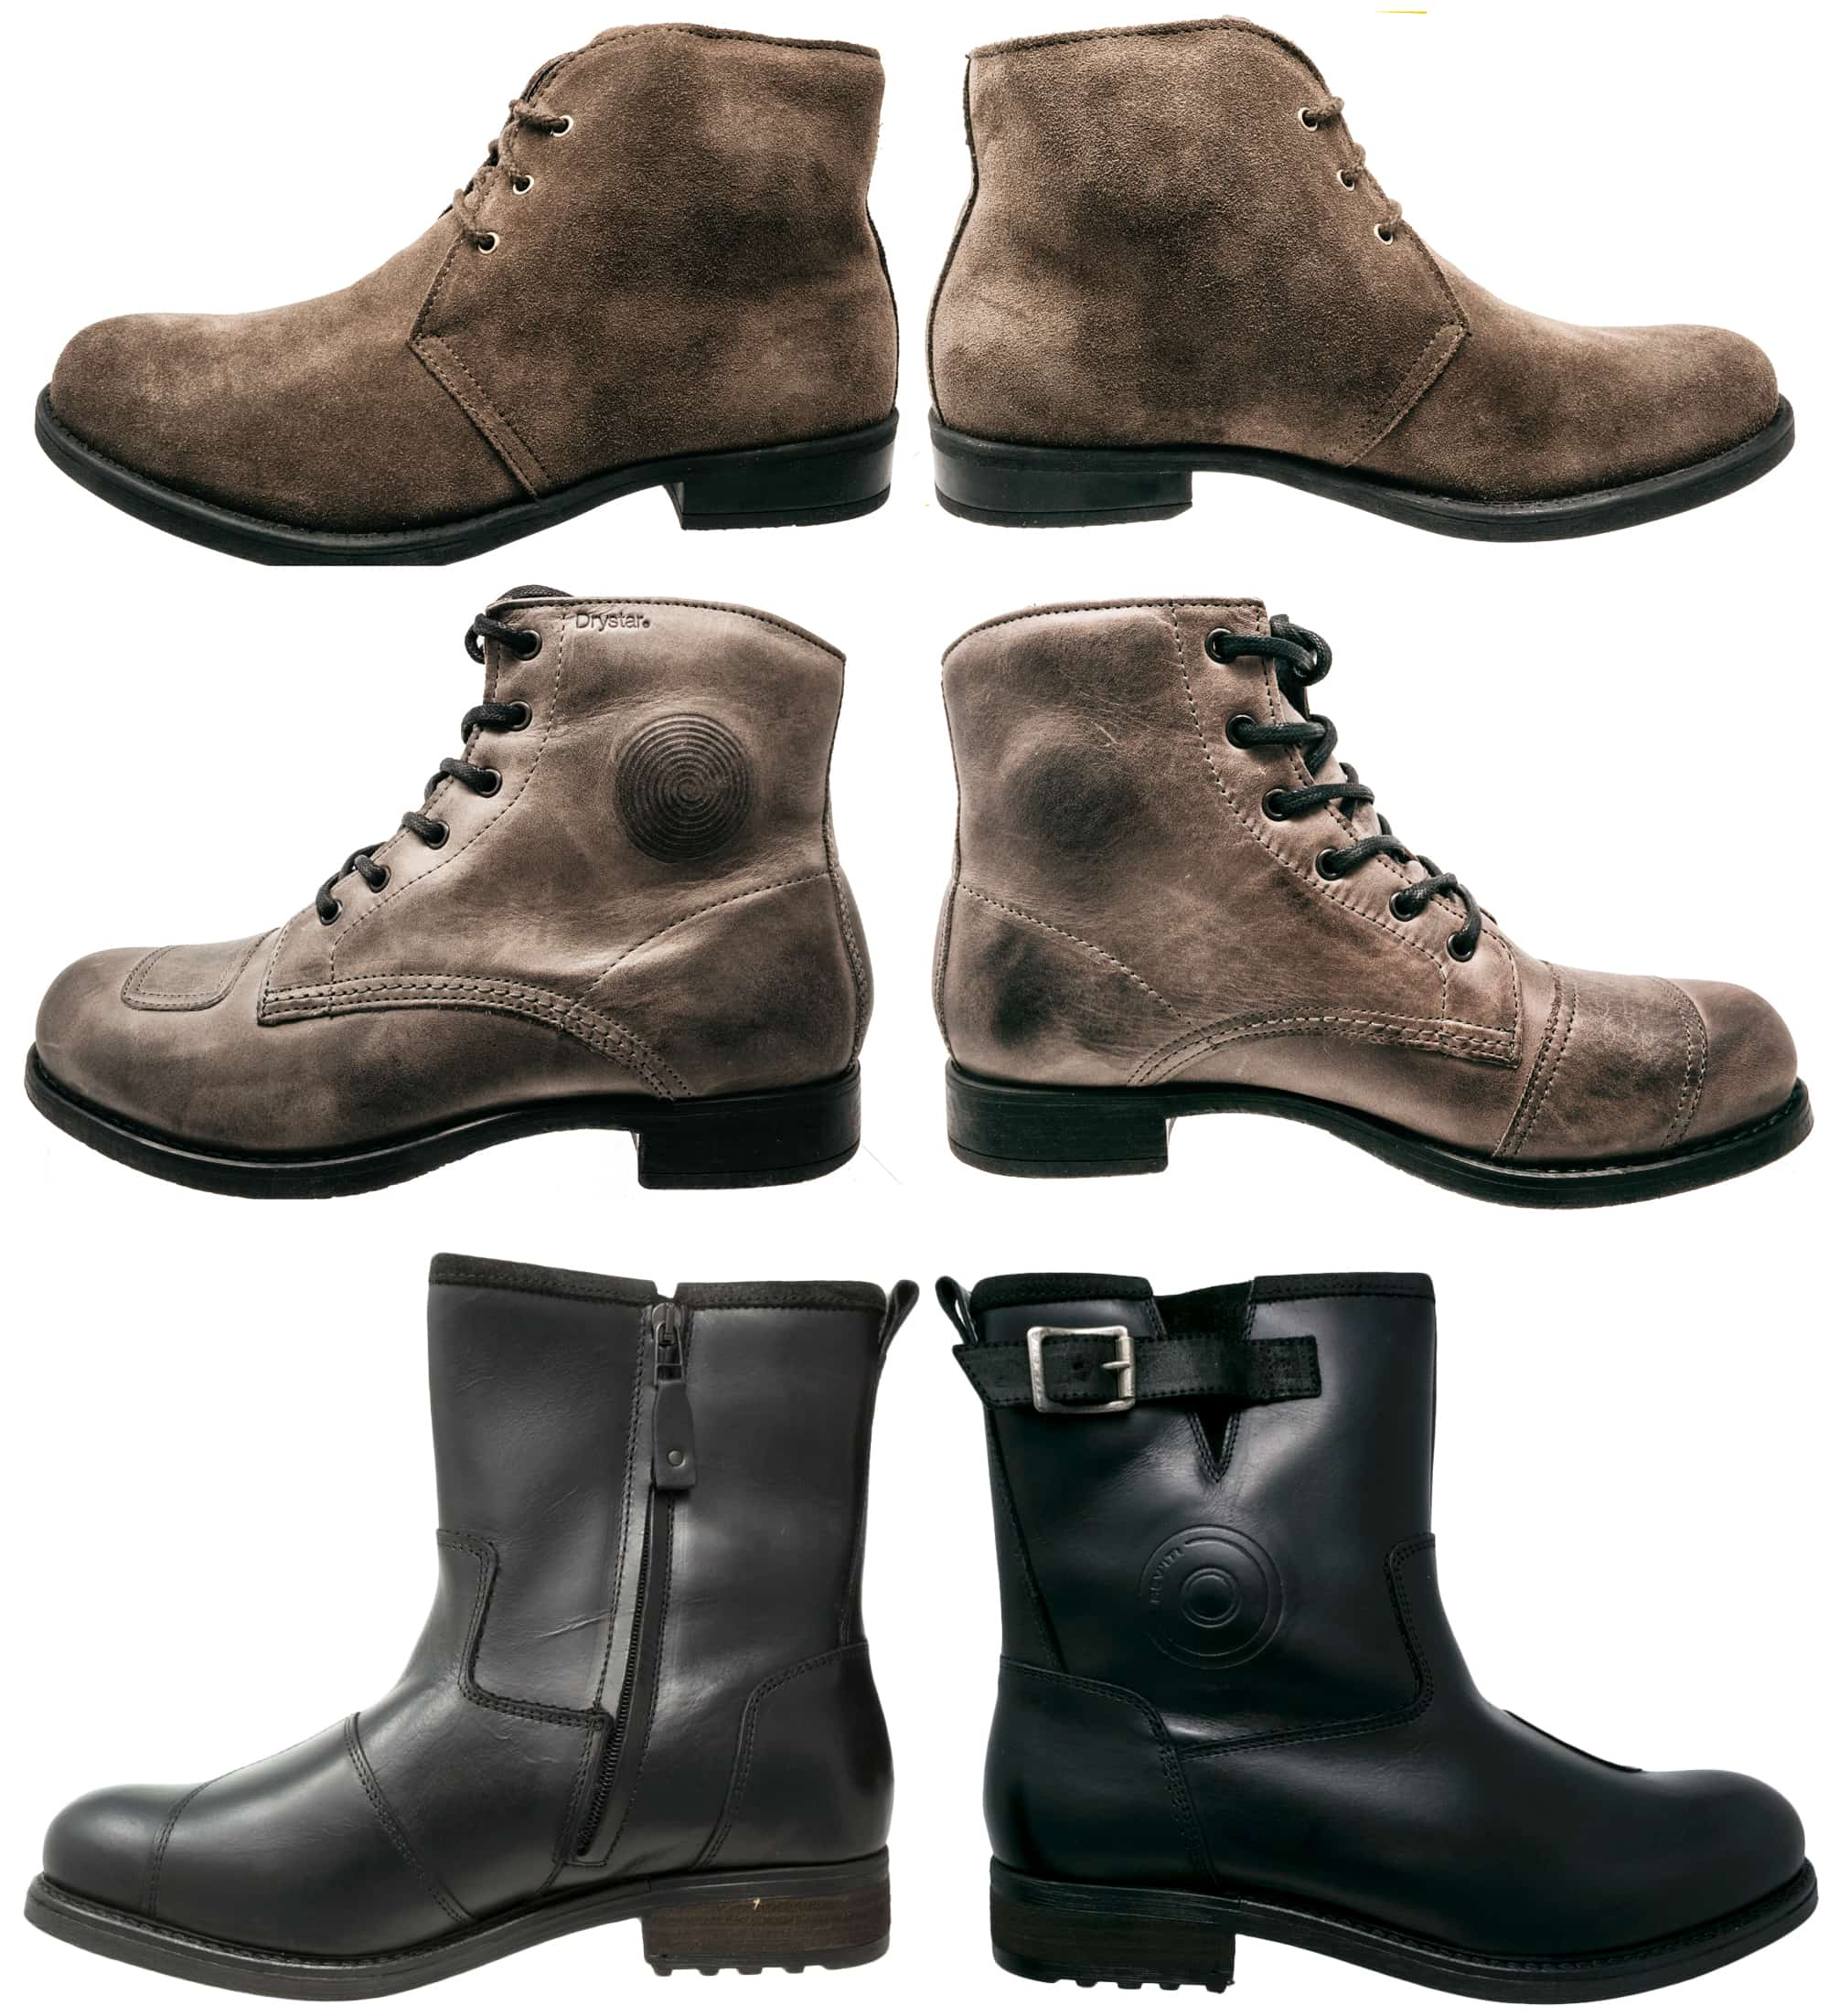 City type casual motorcycle boots